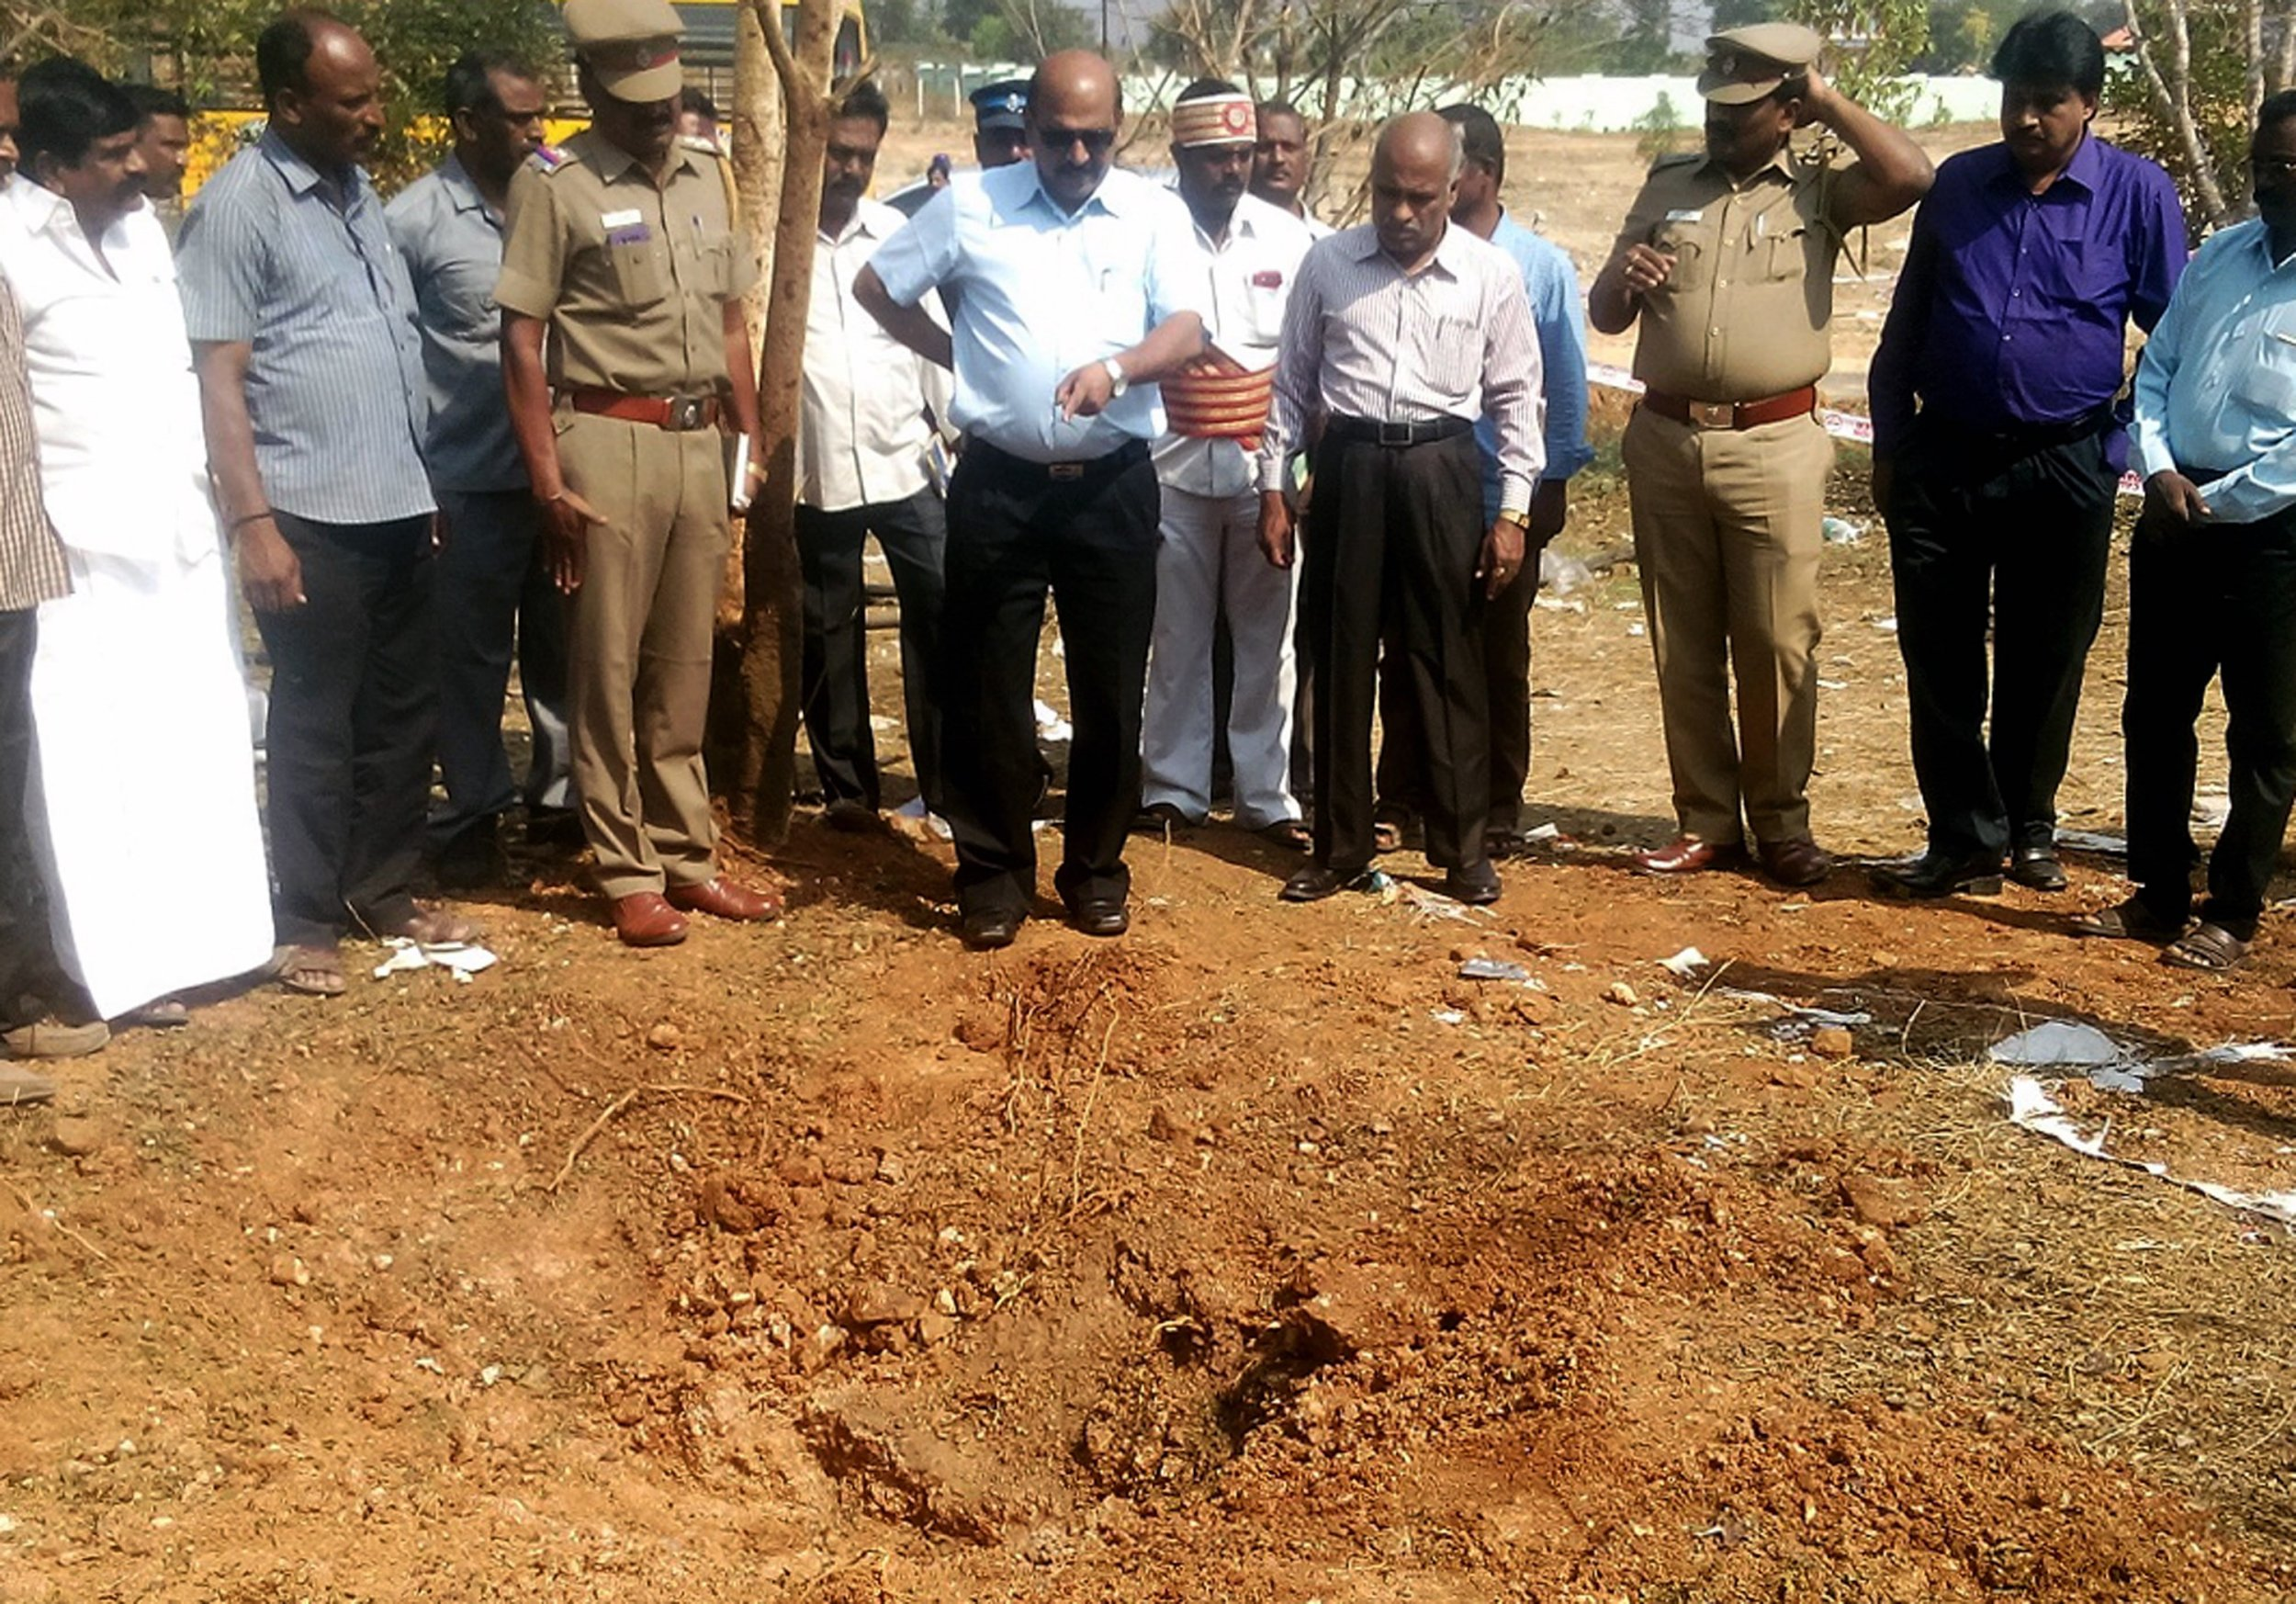 Indian authorities inspect the site of a suspected meteorite landing on February 7, 2016 in Vellore district in southern Tamil Nadu state in an impact that killed a bus driver and injured three others on February 6. If proven, it would be the first such death in recorded history. The impact of the object left a large crater in the ground and shattered window panes in a nearby building, killing the driver who was walking past. AFP PHOTOSTR/AFP/Getty Images